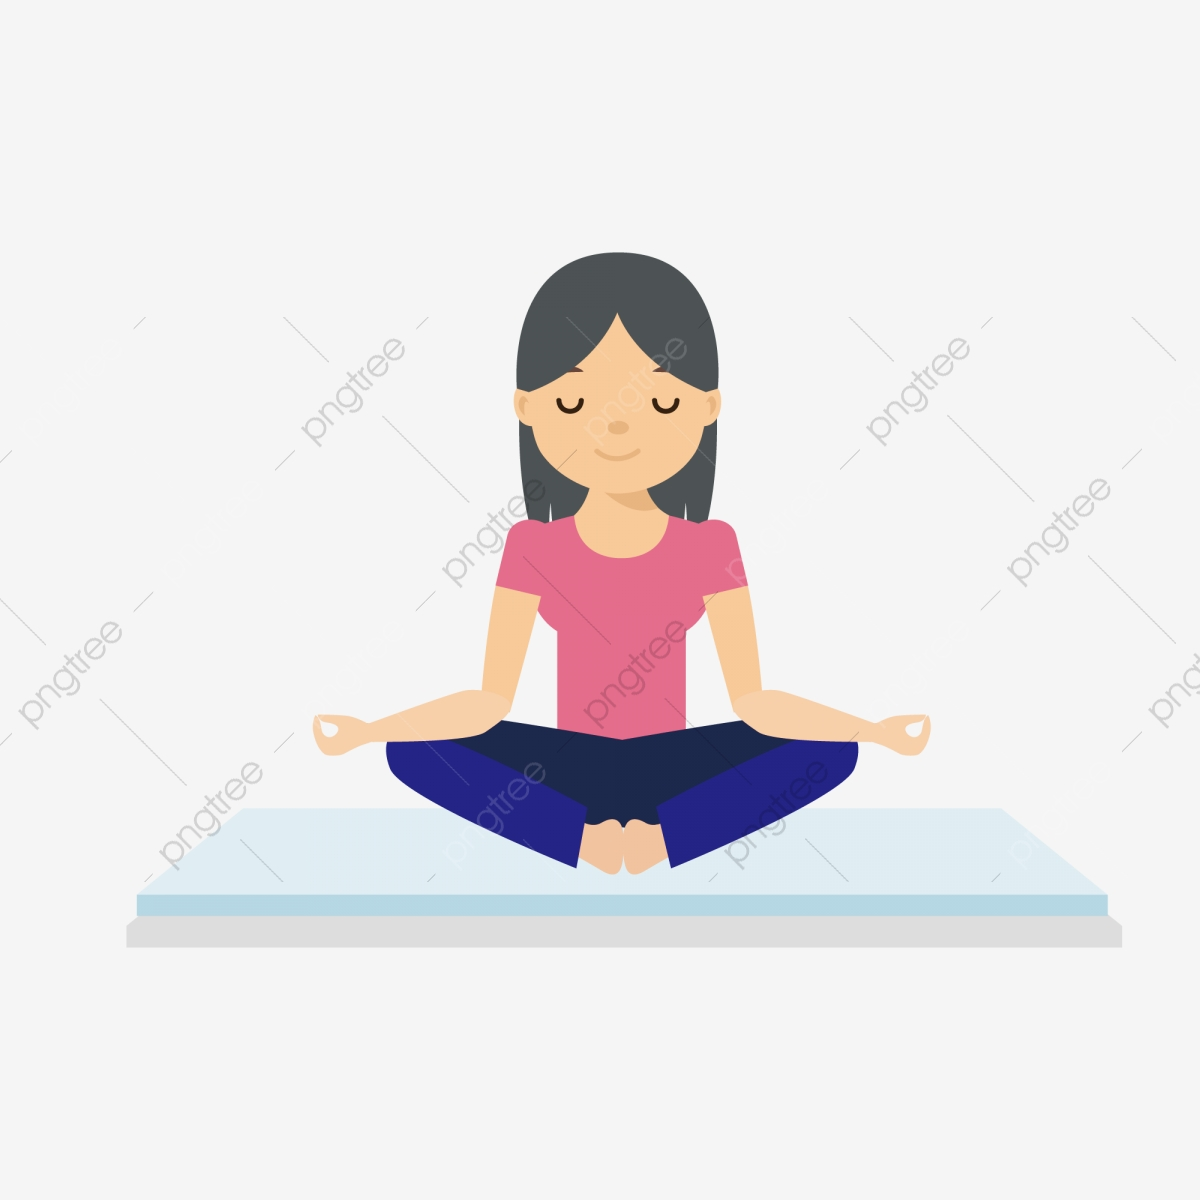 Cartoon Yoga Female Character Design Yoga Day Cartoon Yoga Motion Png Transparent Image And Clipart For Free Download